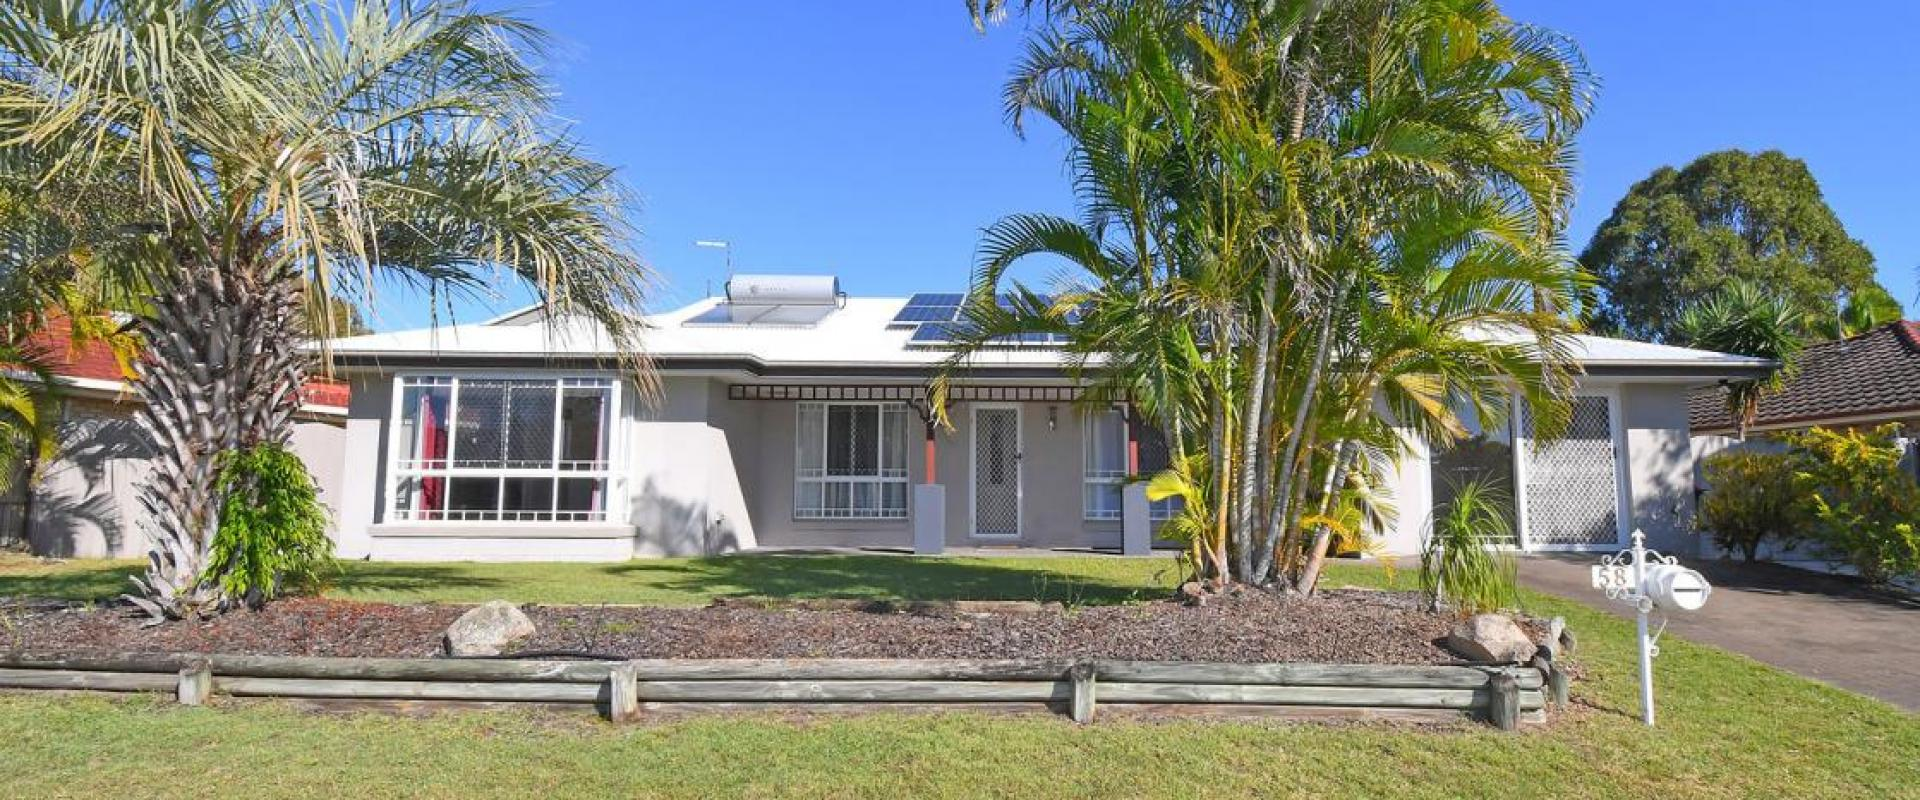 DOUBLE SHED, 5KW 20 PANEL SOLAR SYSTEM, LARGE OPEN PLAN LIVING / FAMILY ROOM, DINING AND MEALS AREA, 17 METRE LONG COVERED ALFRESCO, CLOSE TO SHOPPING